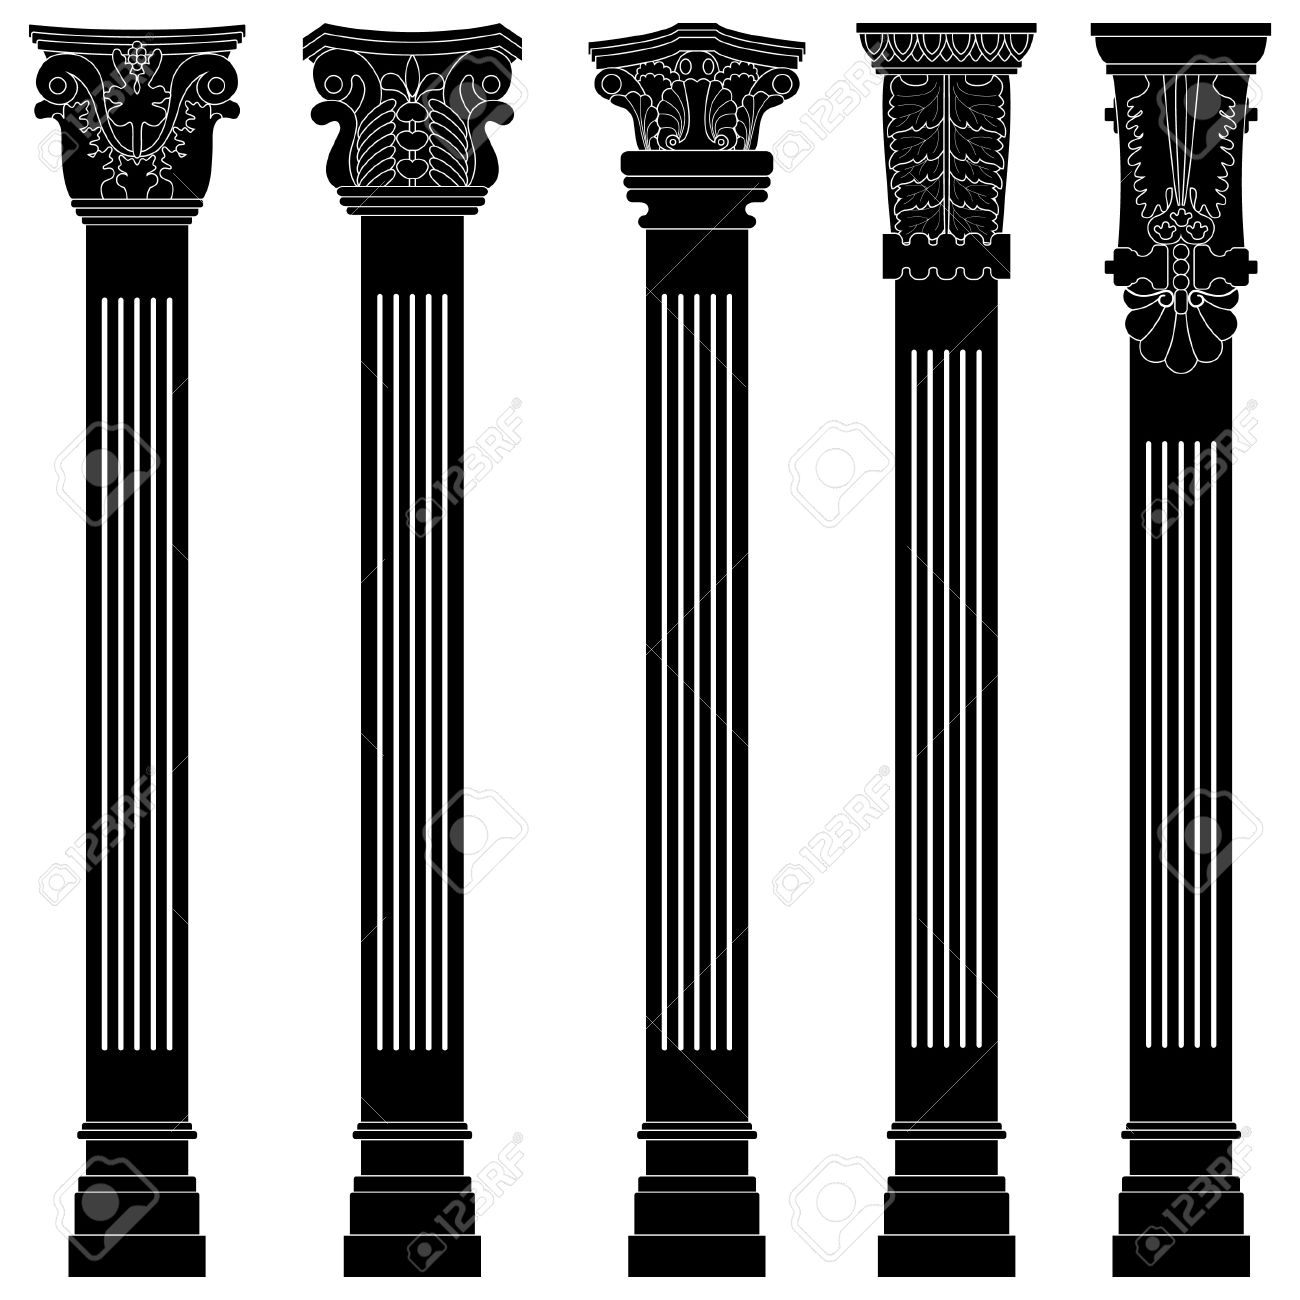 Greek Architecture Columns exellent greek architecture columns quotations and carvings of